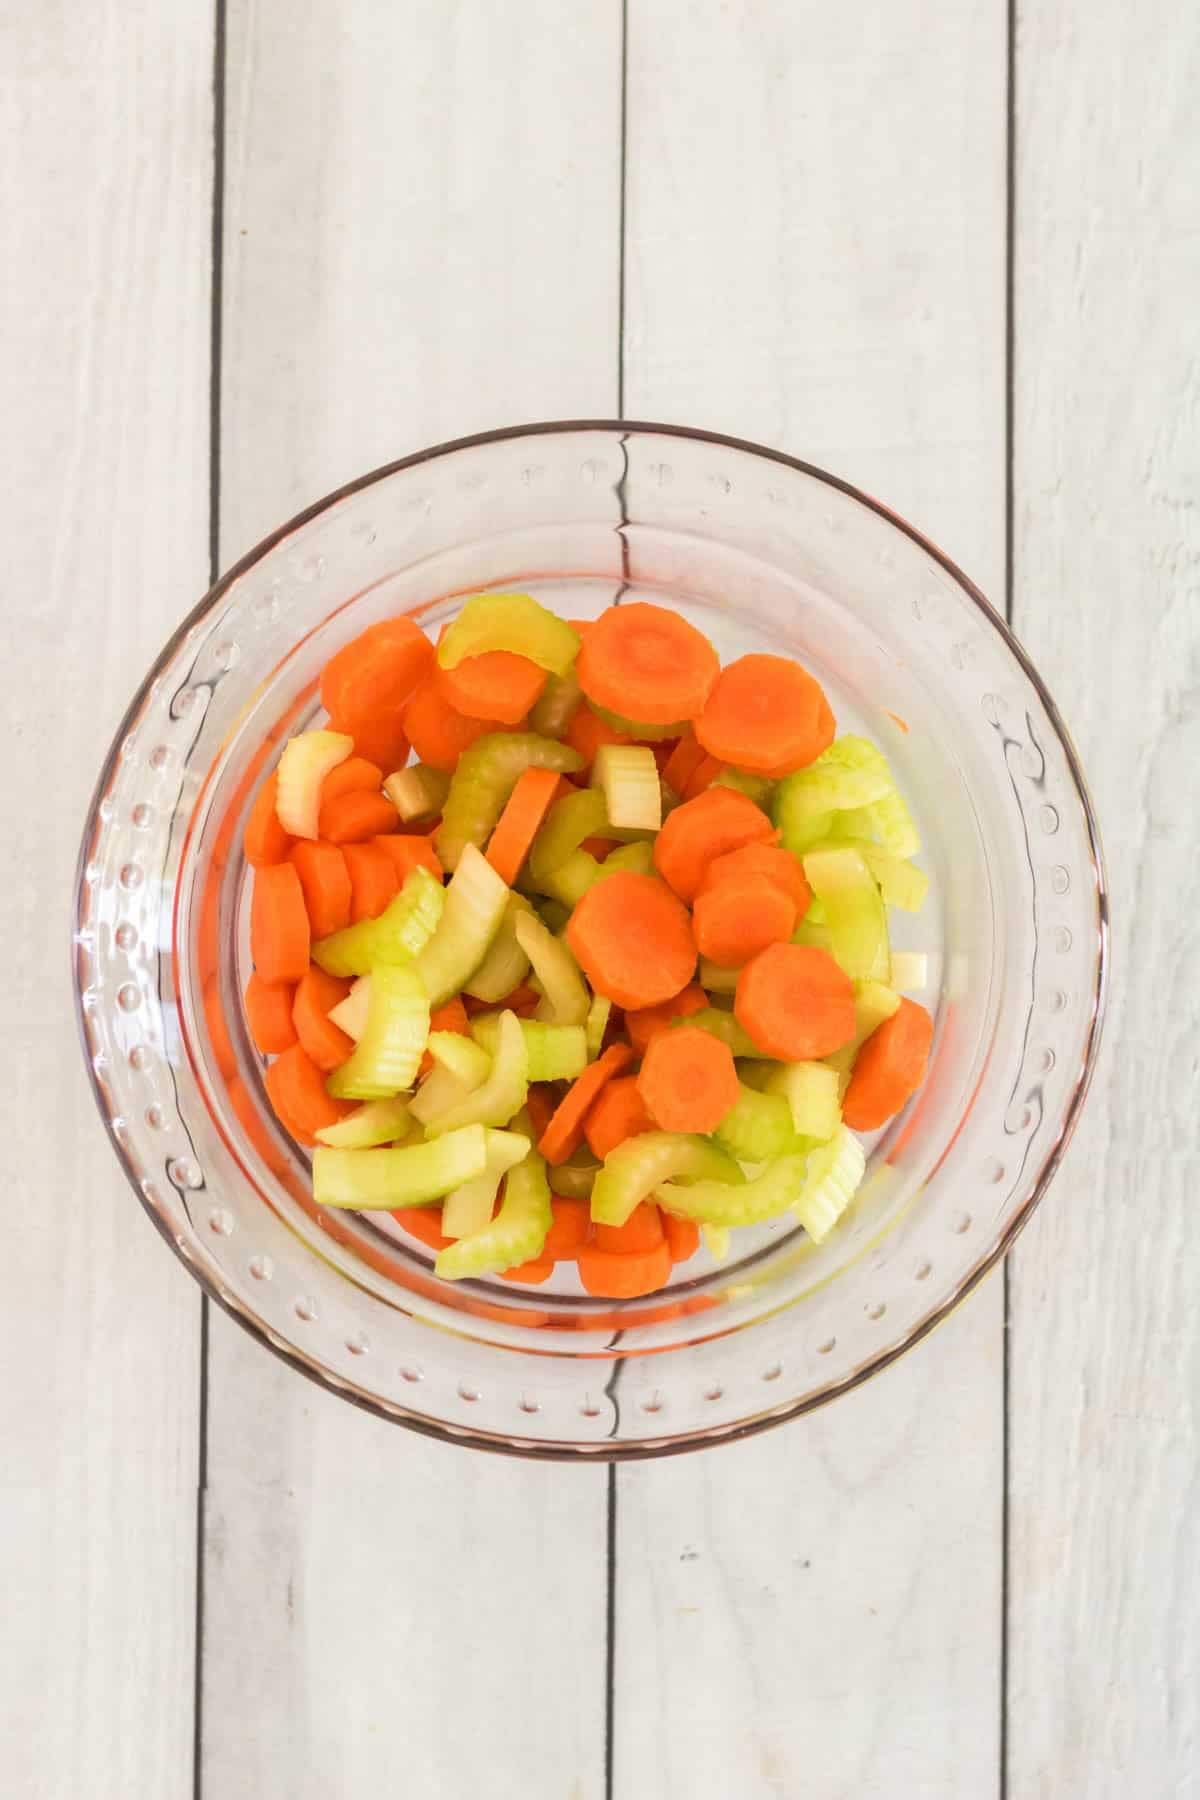 glass bowl with sliced carrots and celery